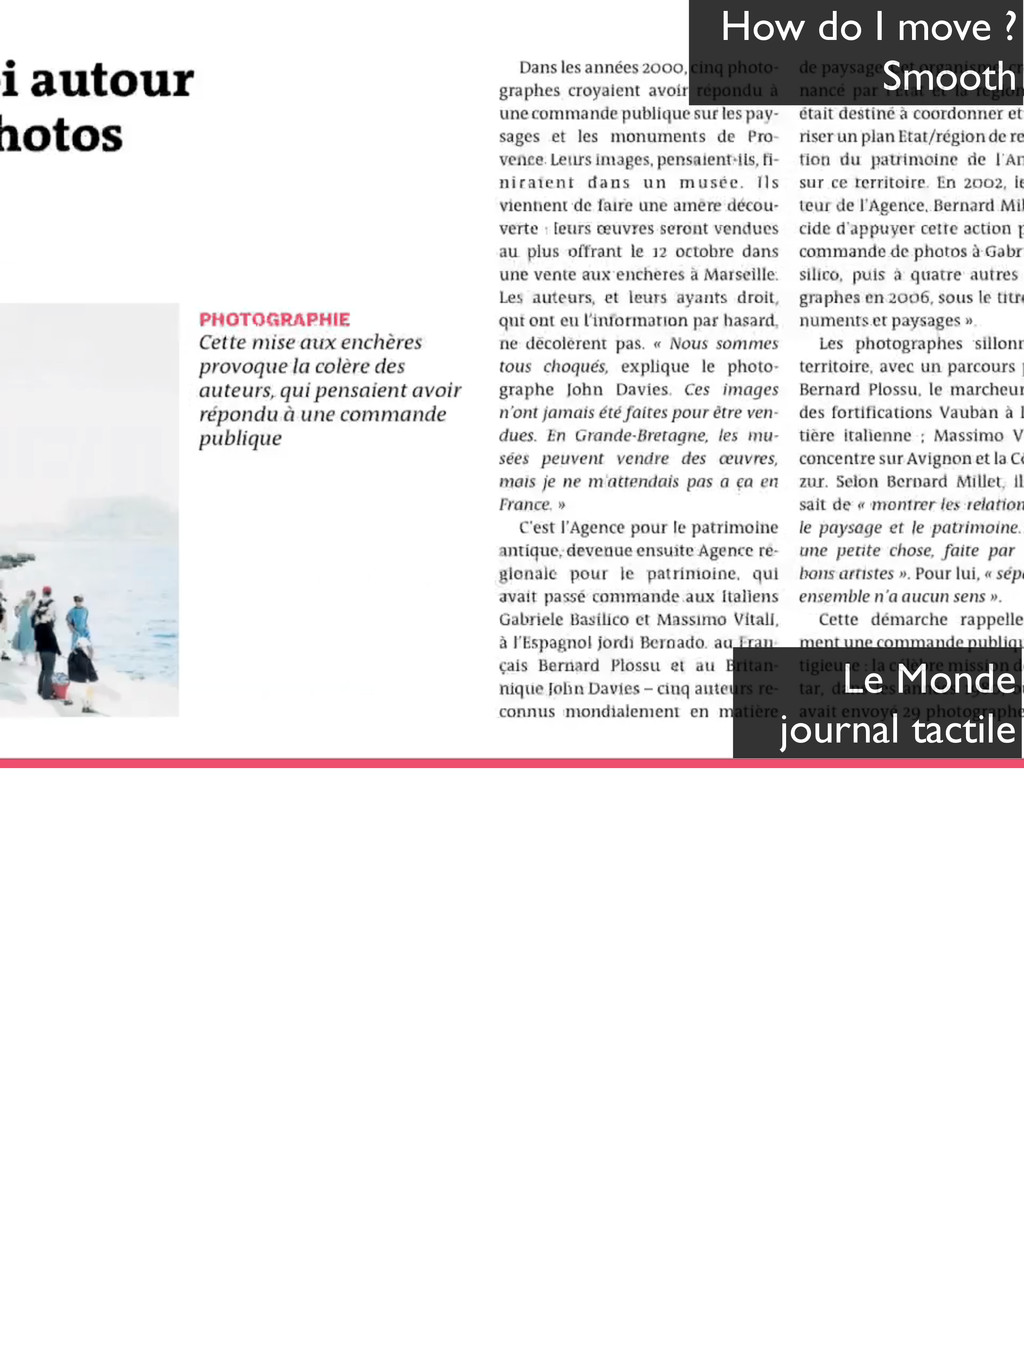 How do I move ? Smooth Le Monde journal tactile